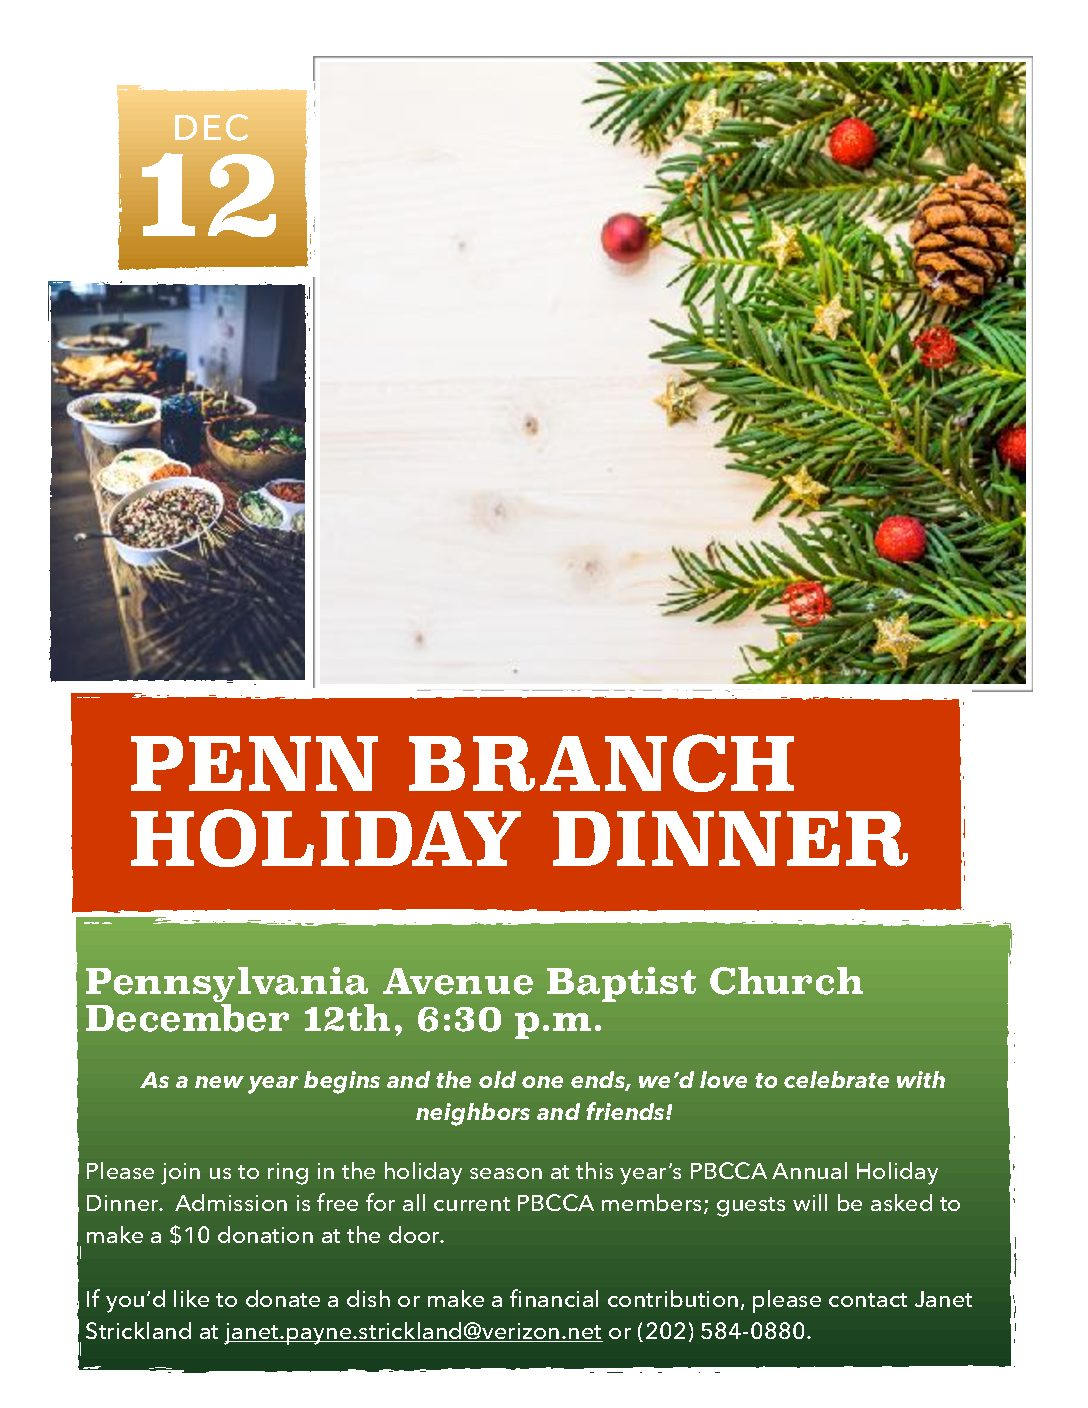 Penn Branch Annual Holiday Dinner and Membership Drive